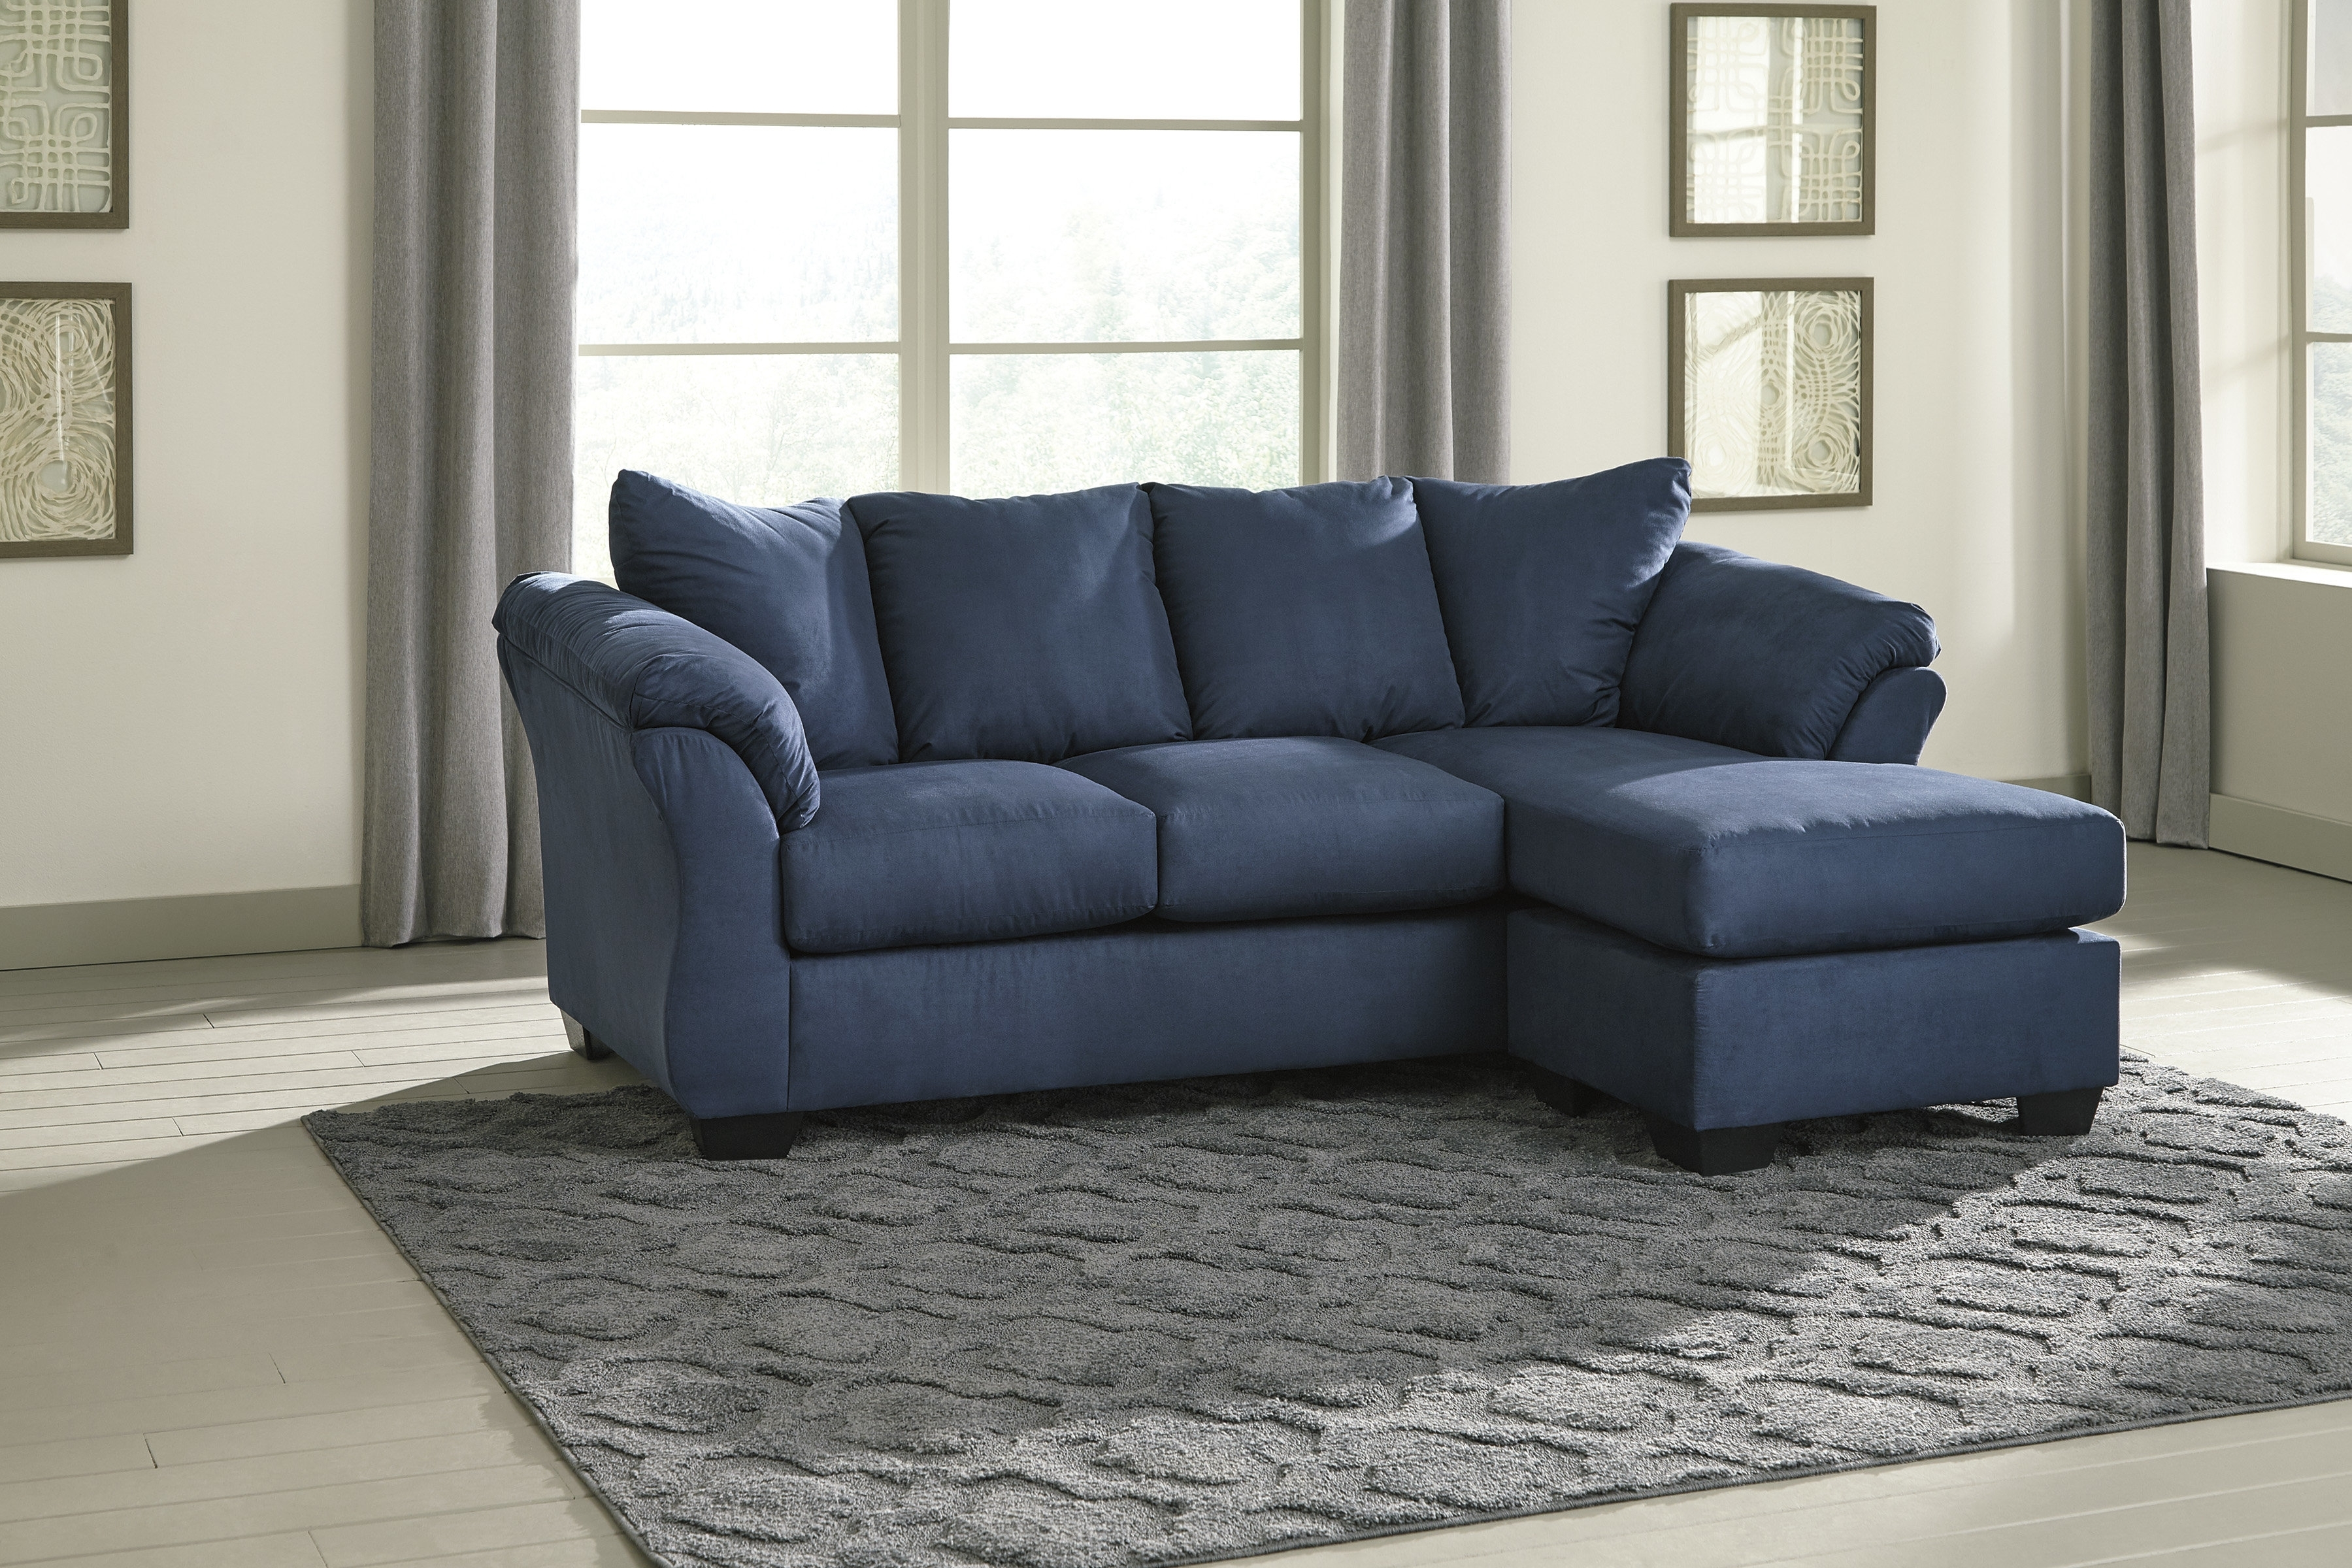 Alcott Hill Sagamore Reversible Sectional & Reviews | Wayfair for Lucy Grey 2 Piece Sectionals With Laf Chaise (Image 1 of 30)